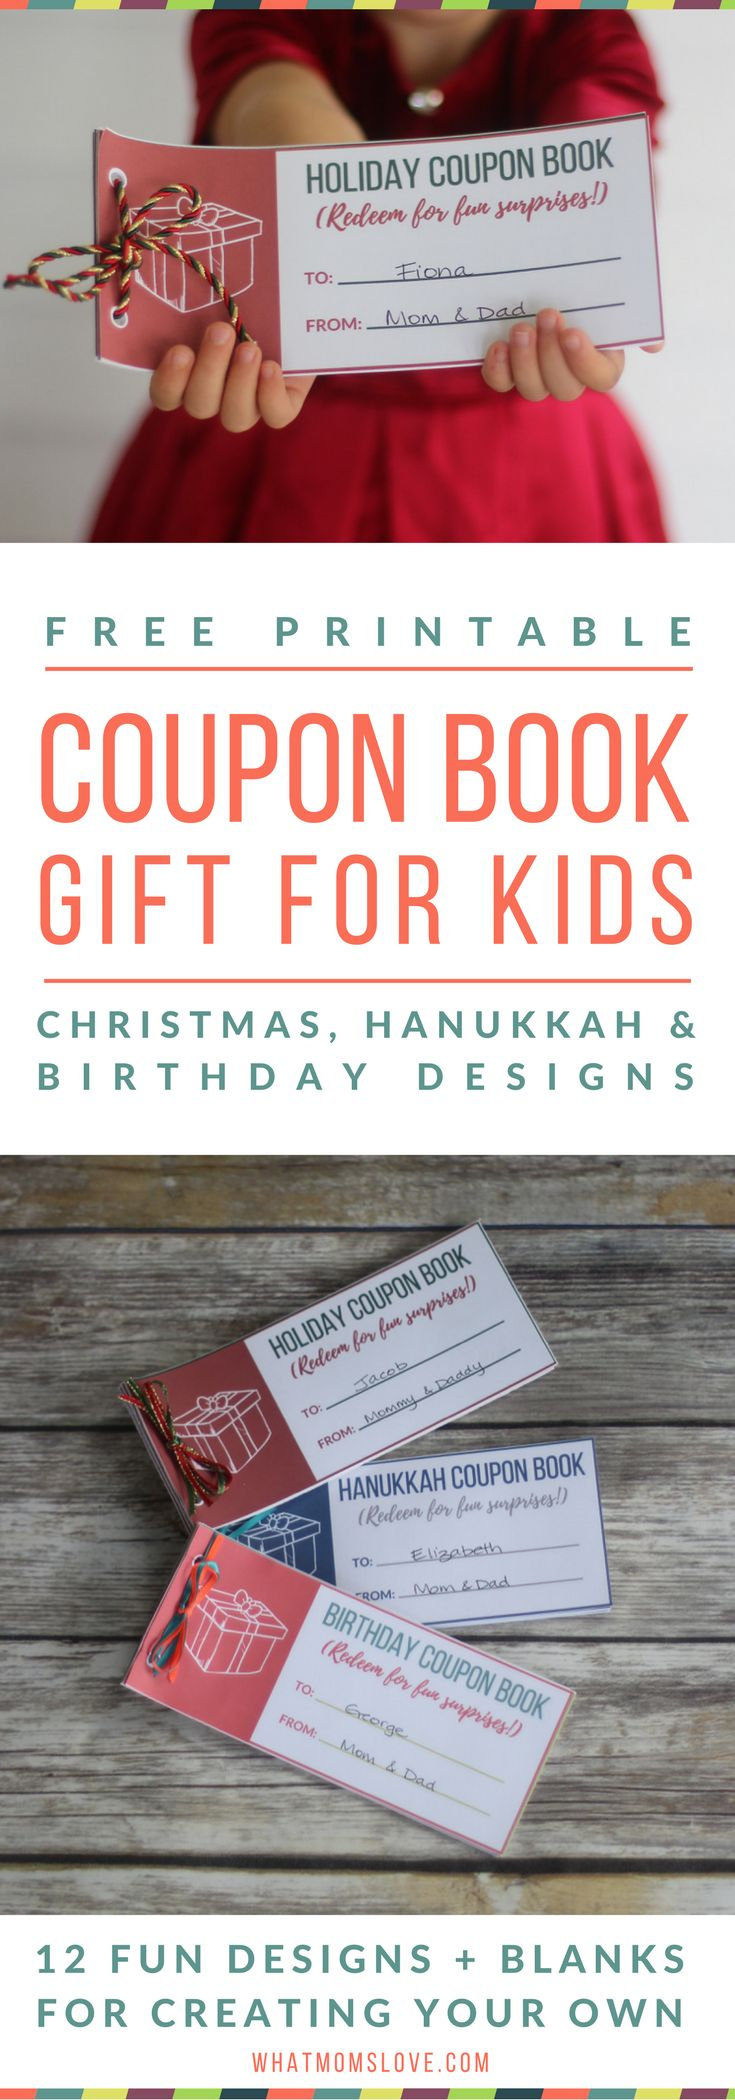 "Free Printable Coupon Books For Kids | A fun gift idea for the Holidays or birthdays! 12 designs for memorable experiences like a ""one-on-one date with mom or dad"" or special treats like ""breakfast in bed"" and ""stay up 30 minutes past bedtime"". Christmas, Hanukkah & birthday designs + blanks to write-in your own. Great DIY gift - simply download and print. Awesome idea for a Stocking Stuffer for children! Part of The Unrivaled Non-Toy Gift Guide from What Moms Love"